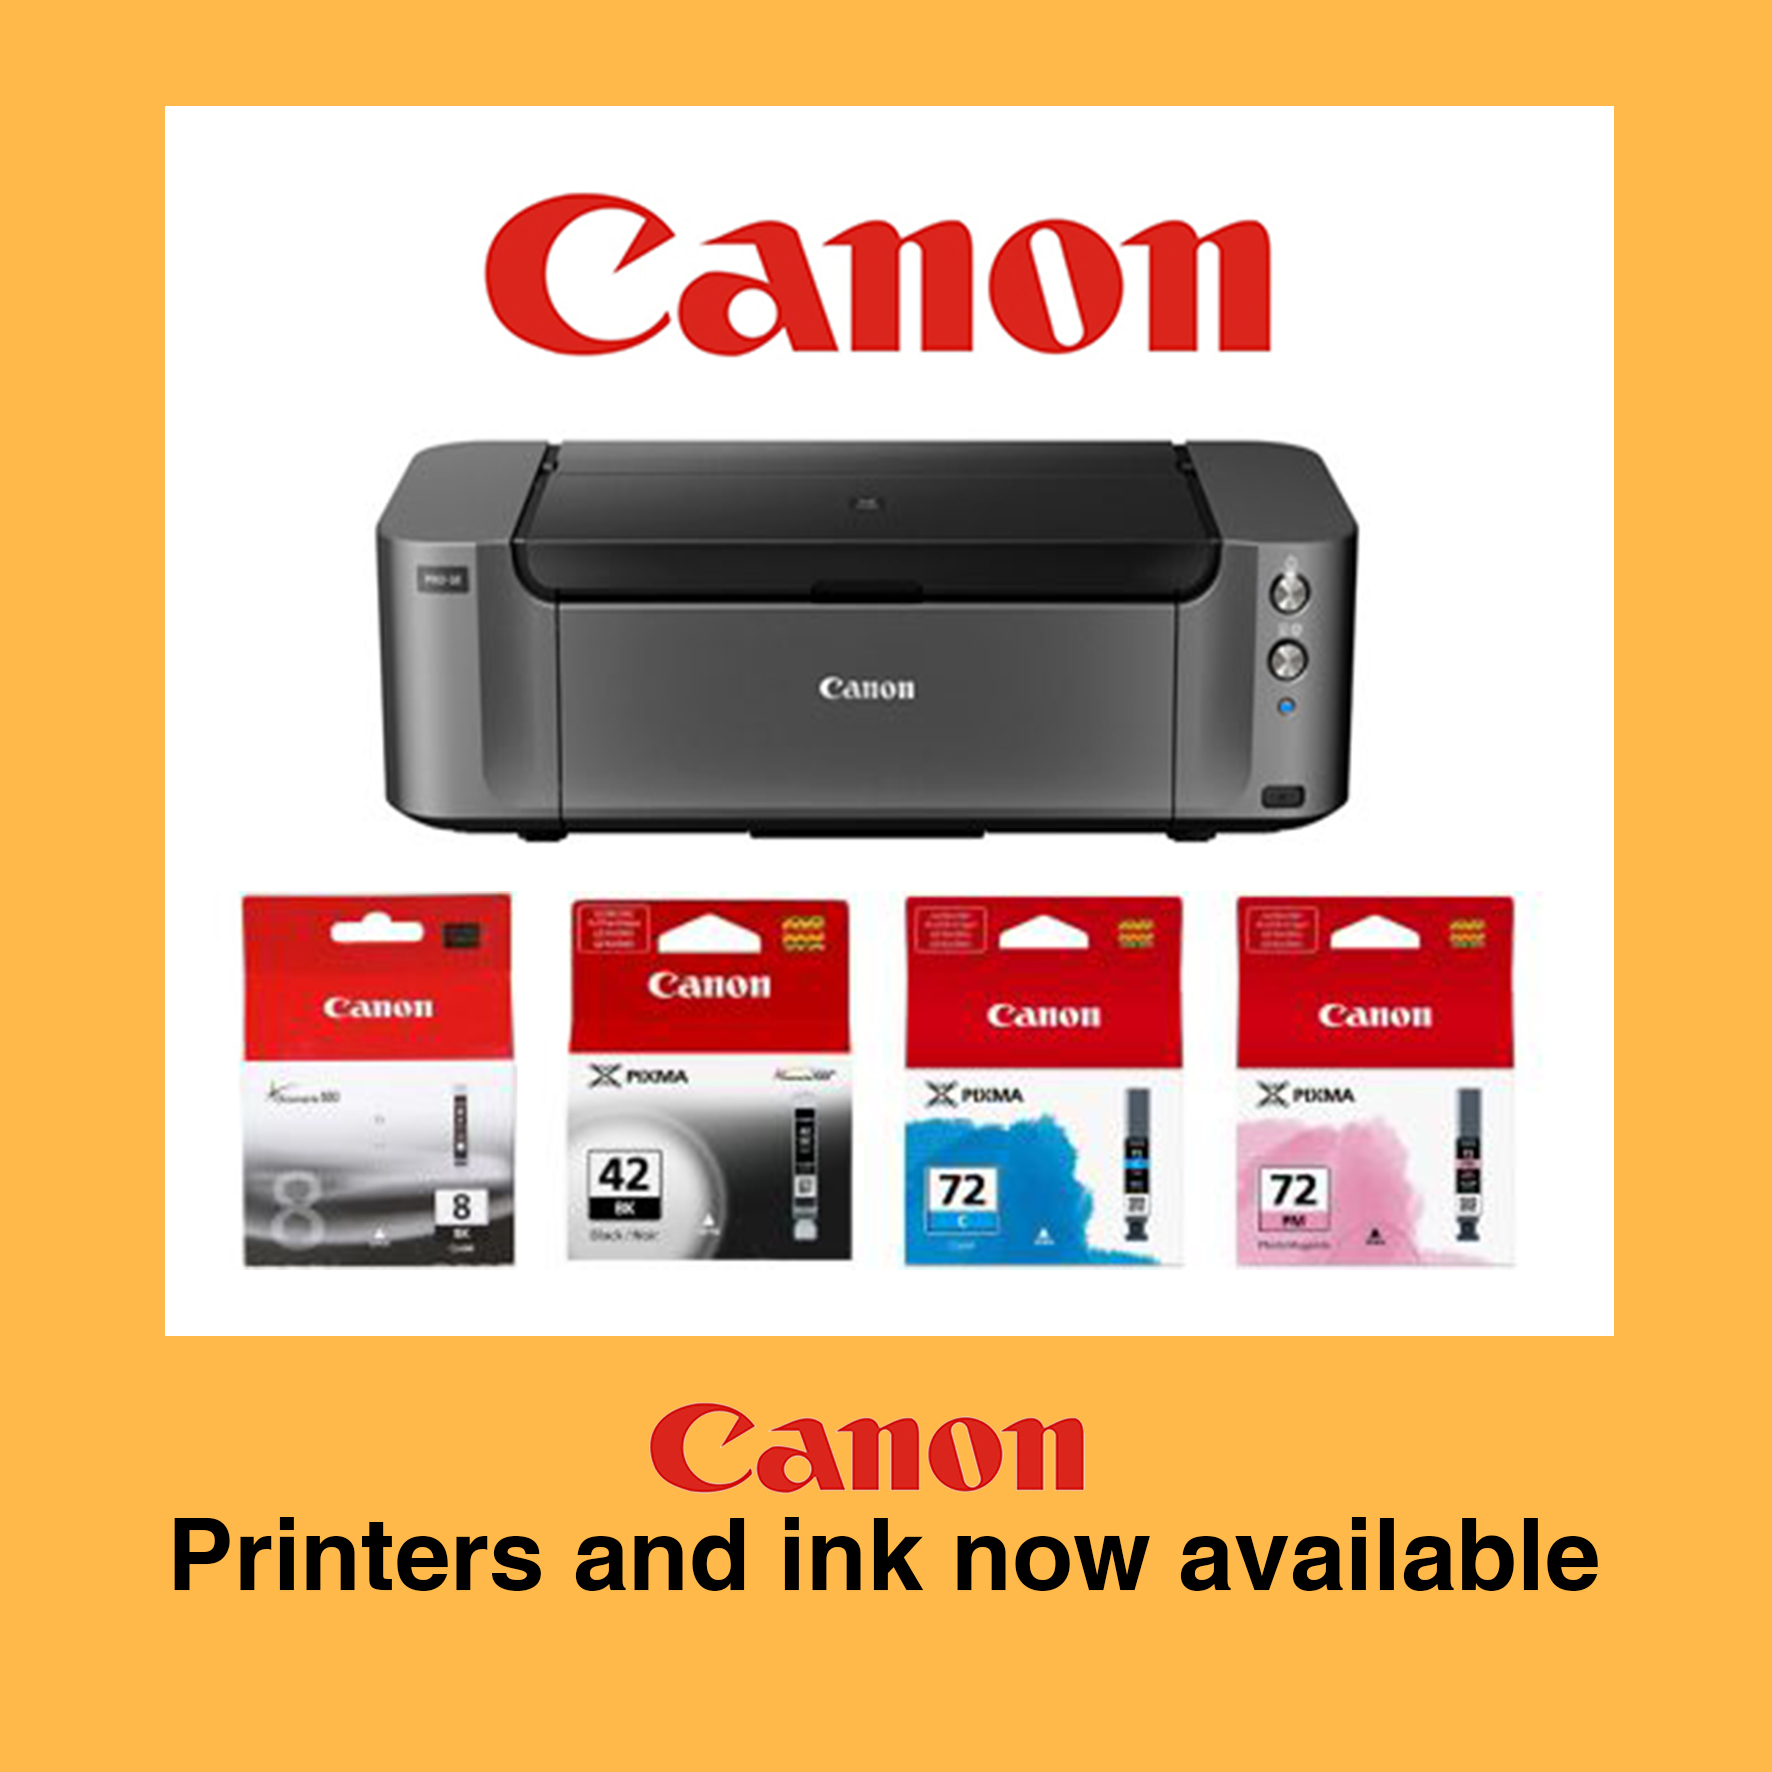 SECOND 10 Canon Printers and Ink